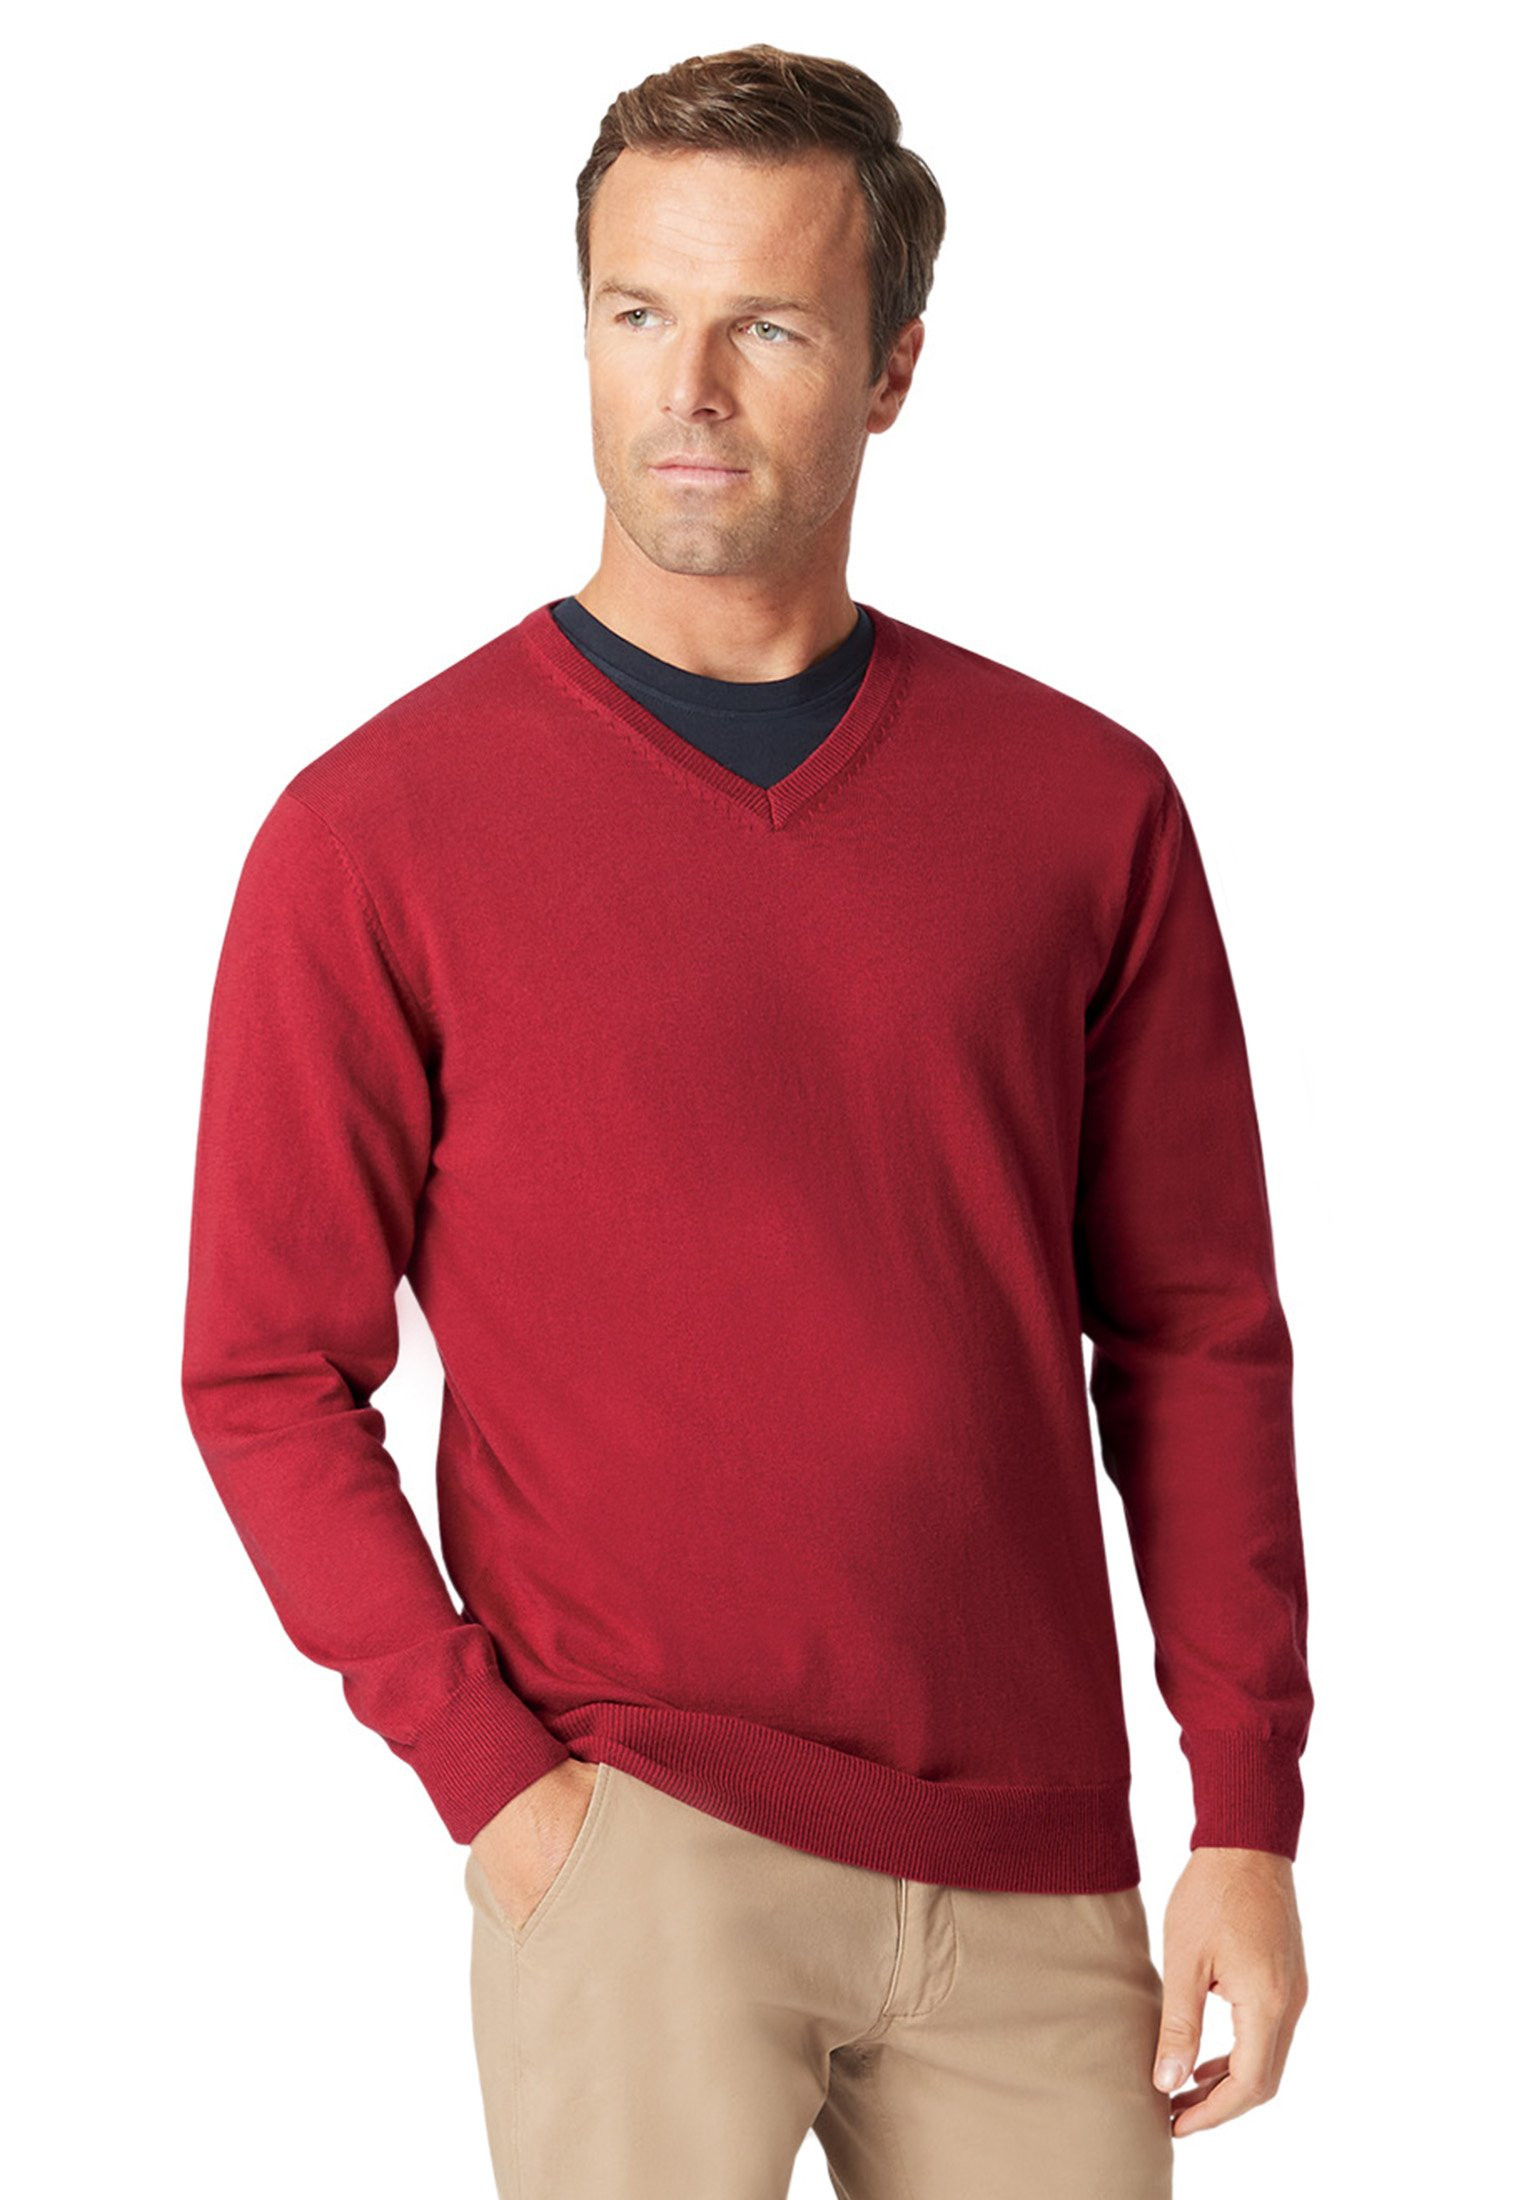 Watton Claret Luxury Cotton Merino V-Neck Sweater